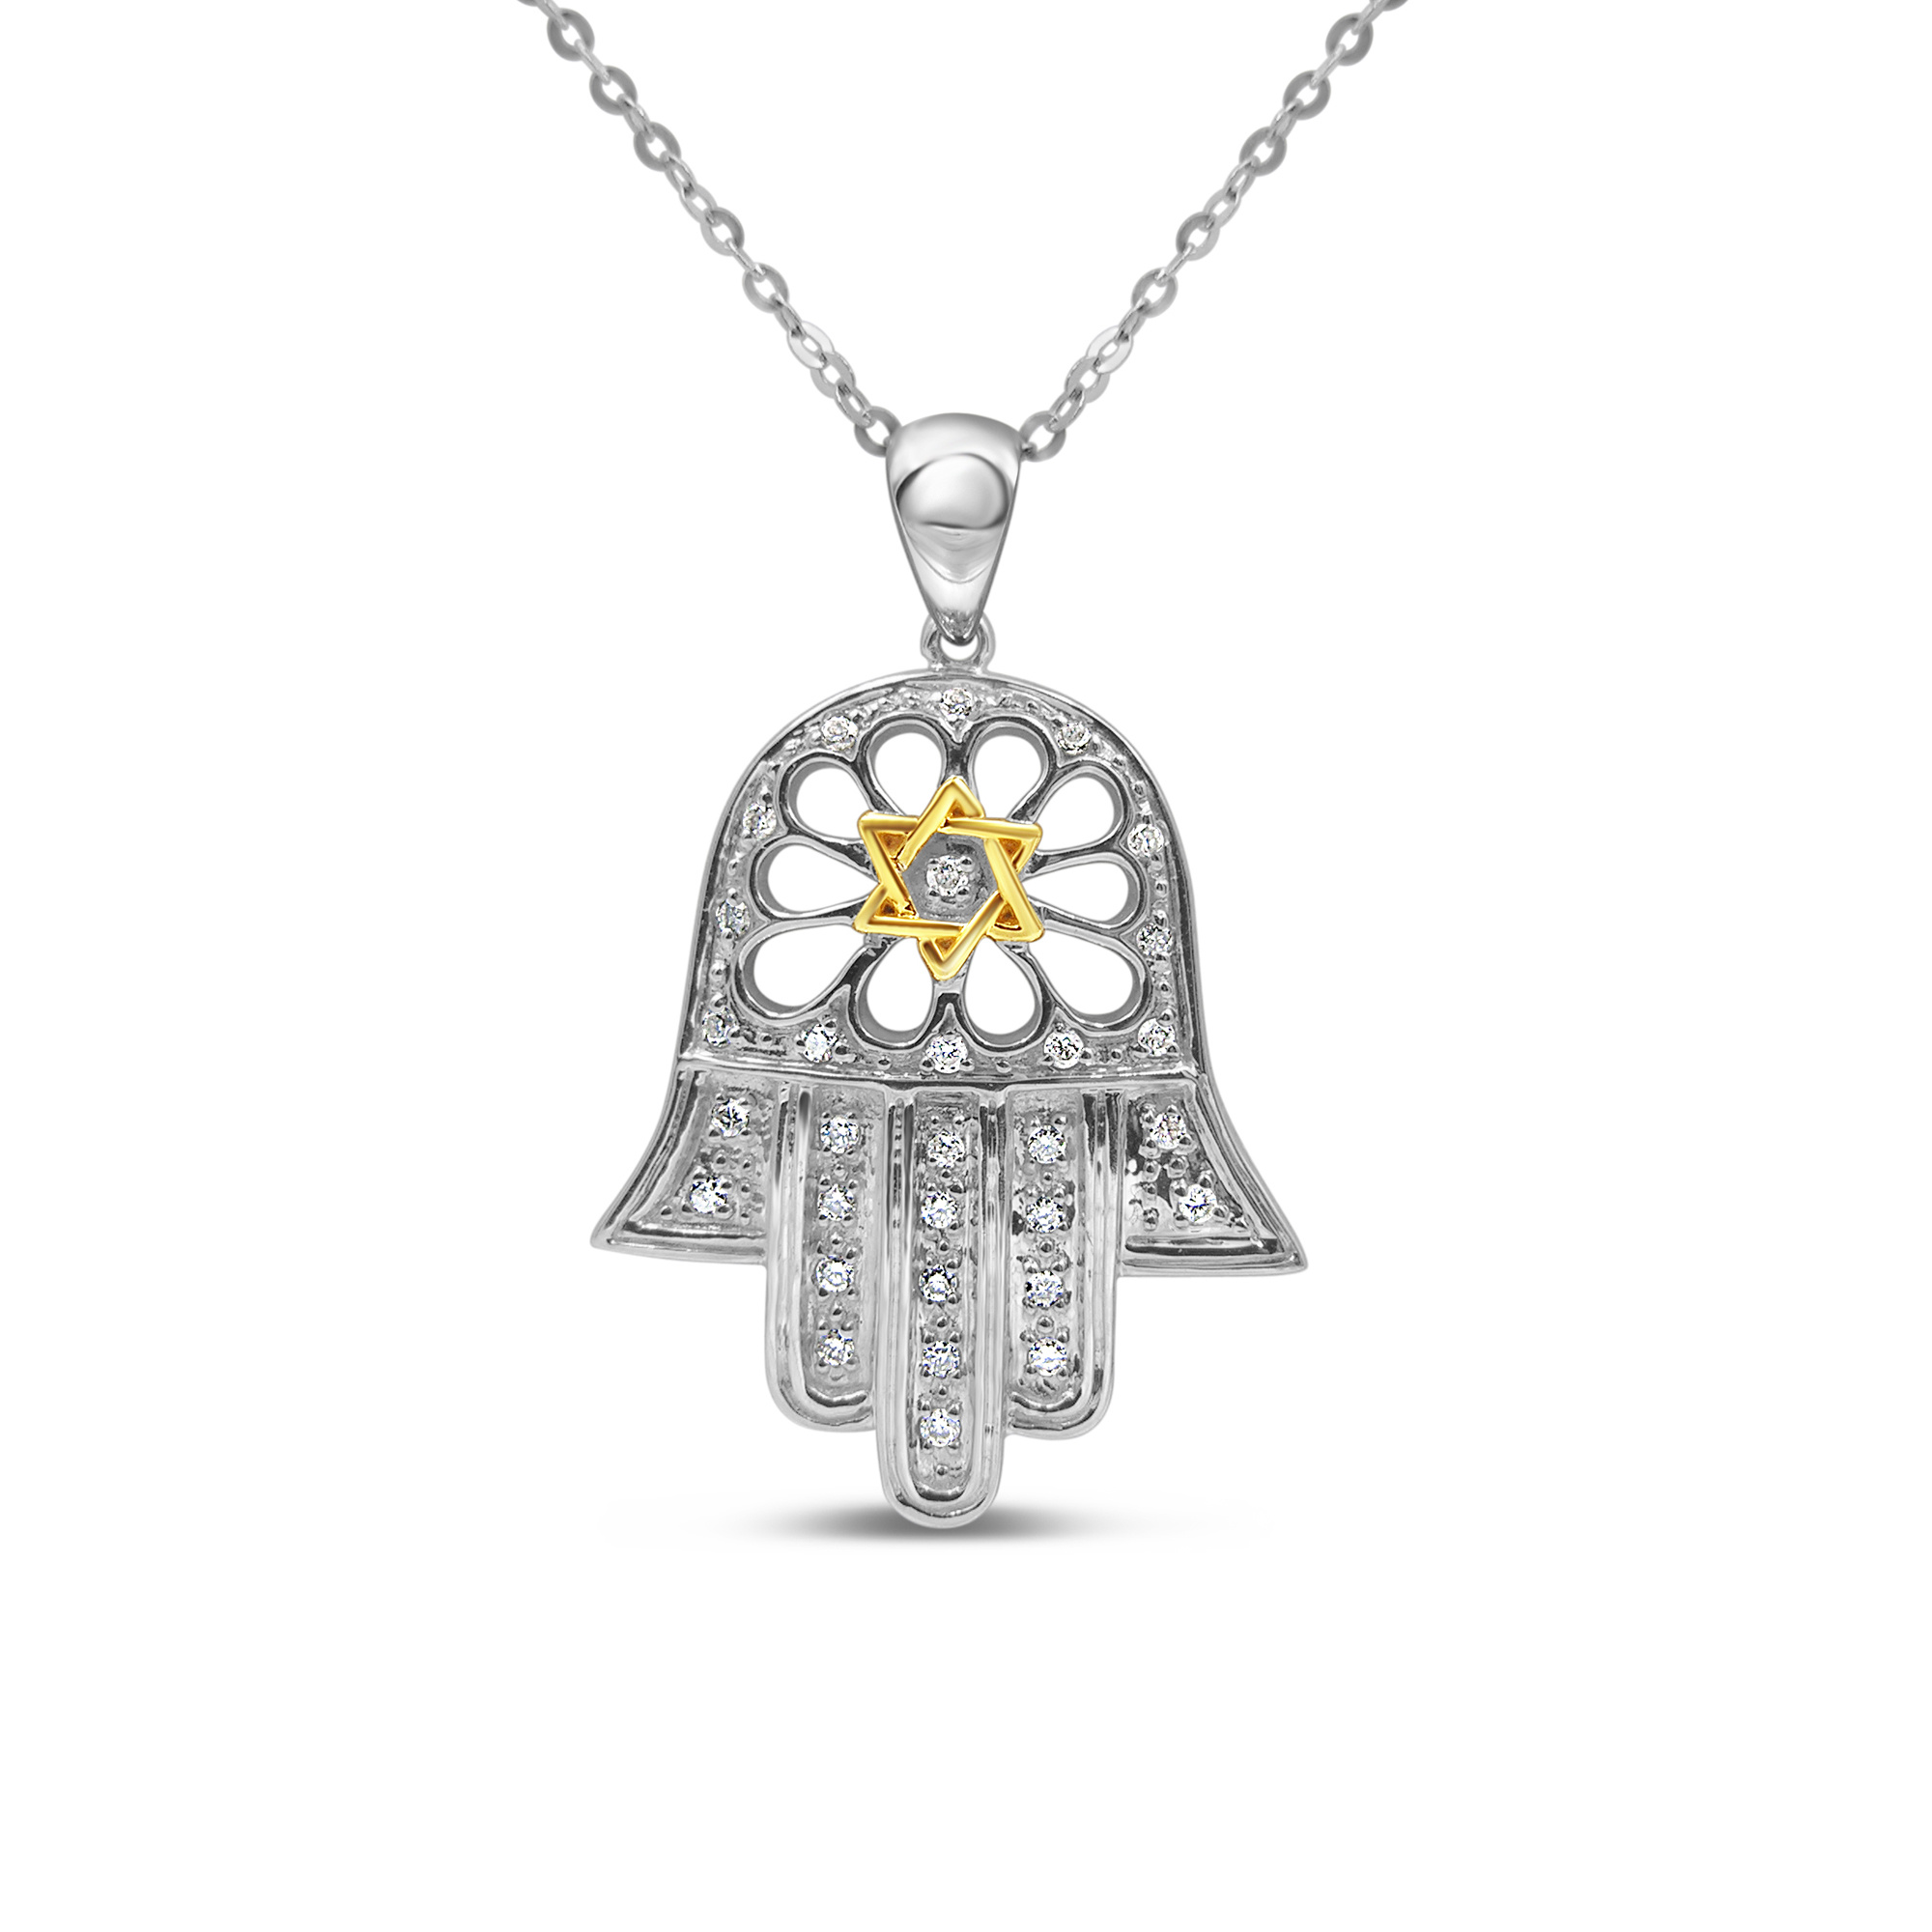 18kt white & yellow gold hand with david star pendant with 0.16 ct diamonds